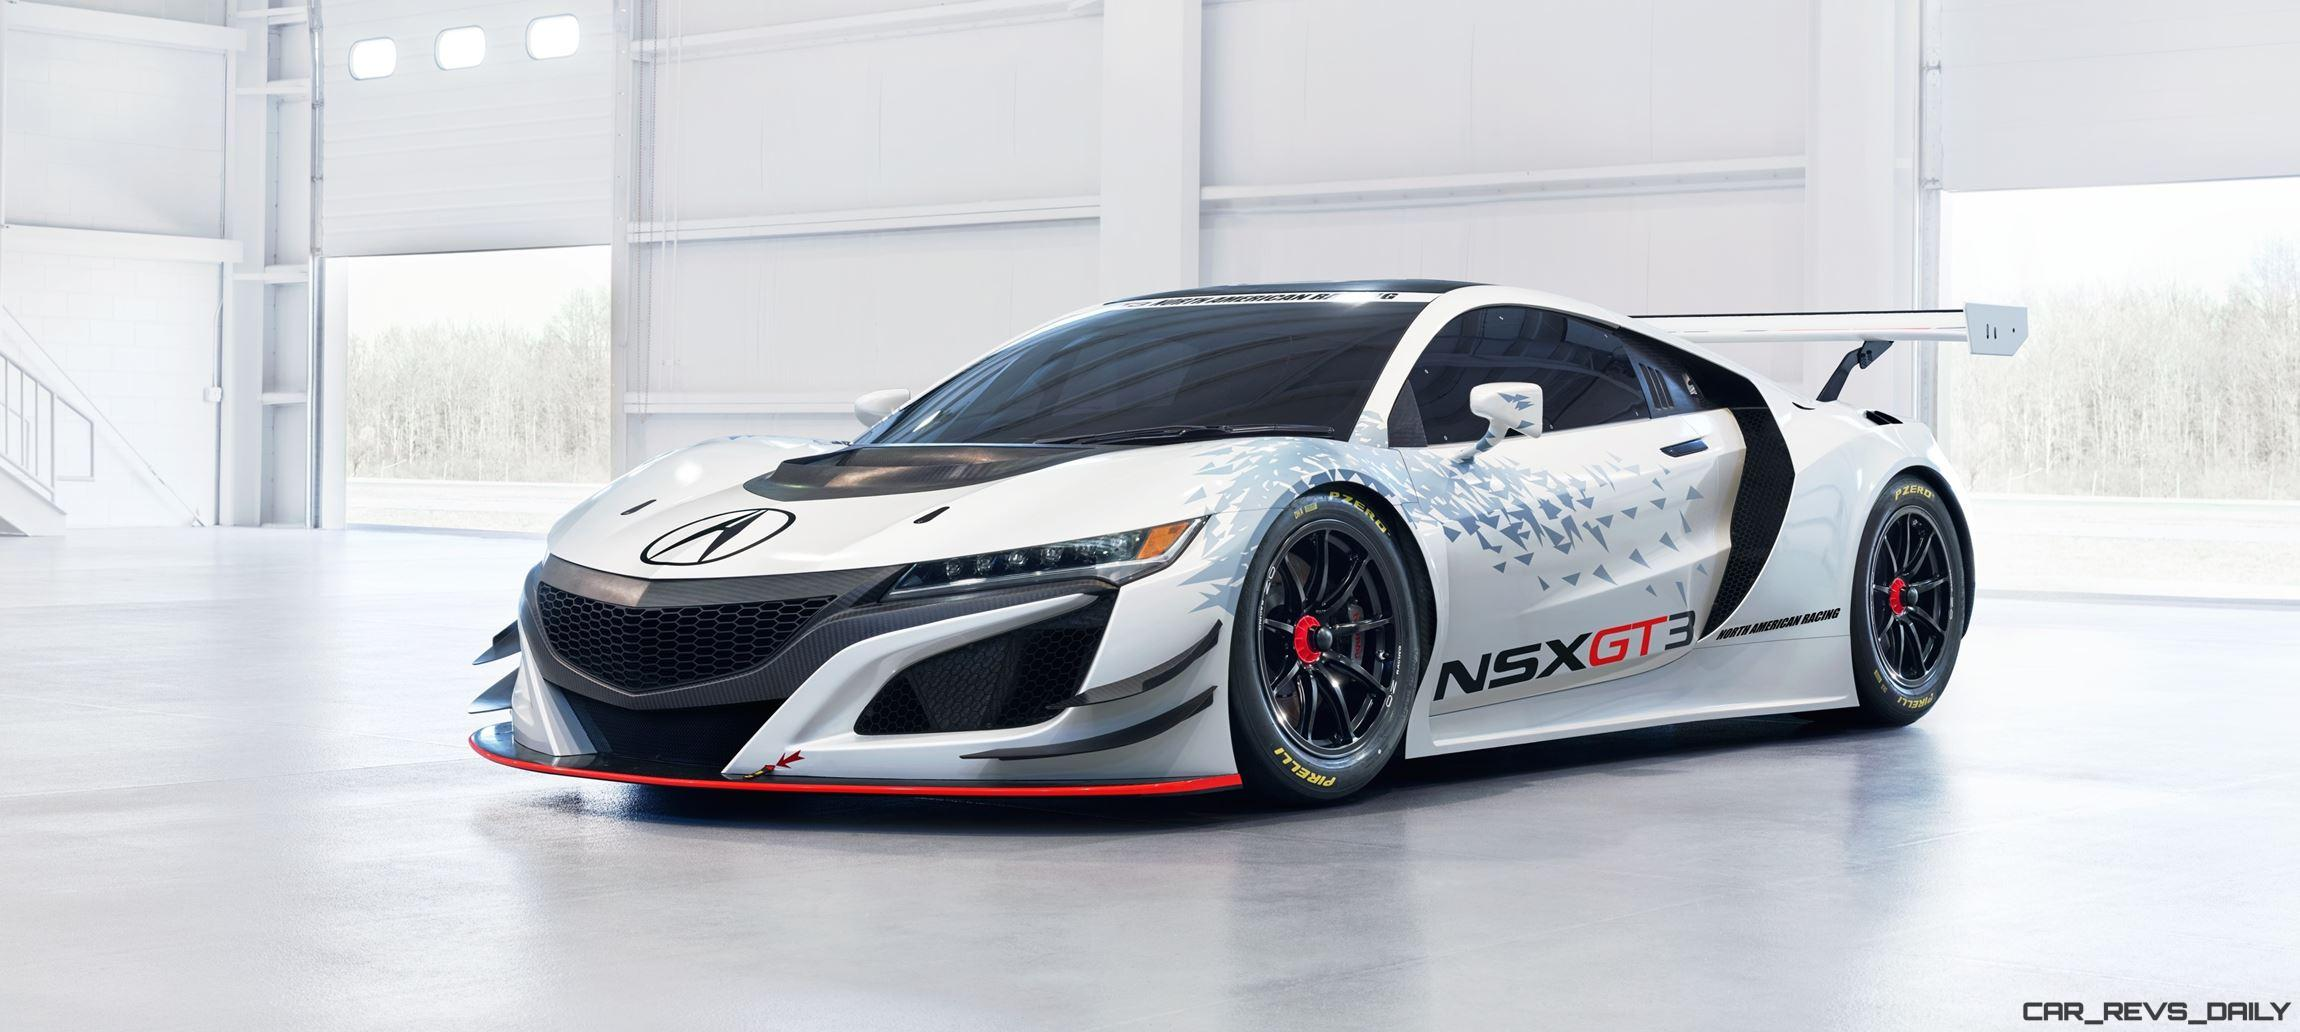 2017 Acura Nsx Gt3 V6tt Rwd Racecar Is Fia Ready Video 2000 Chevy Camaro Fuse Box